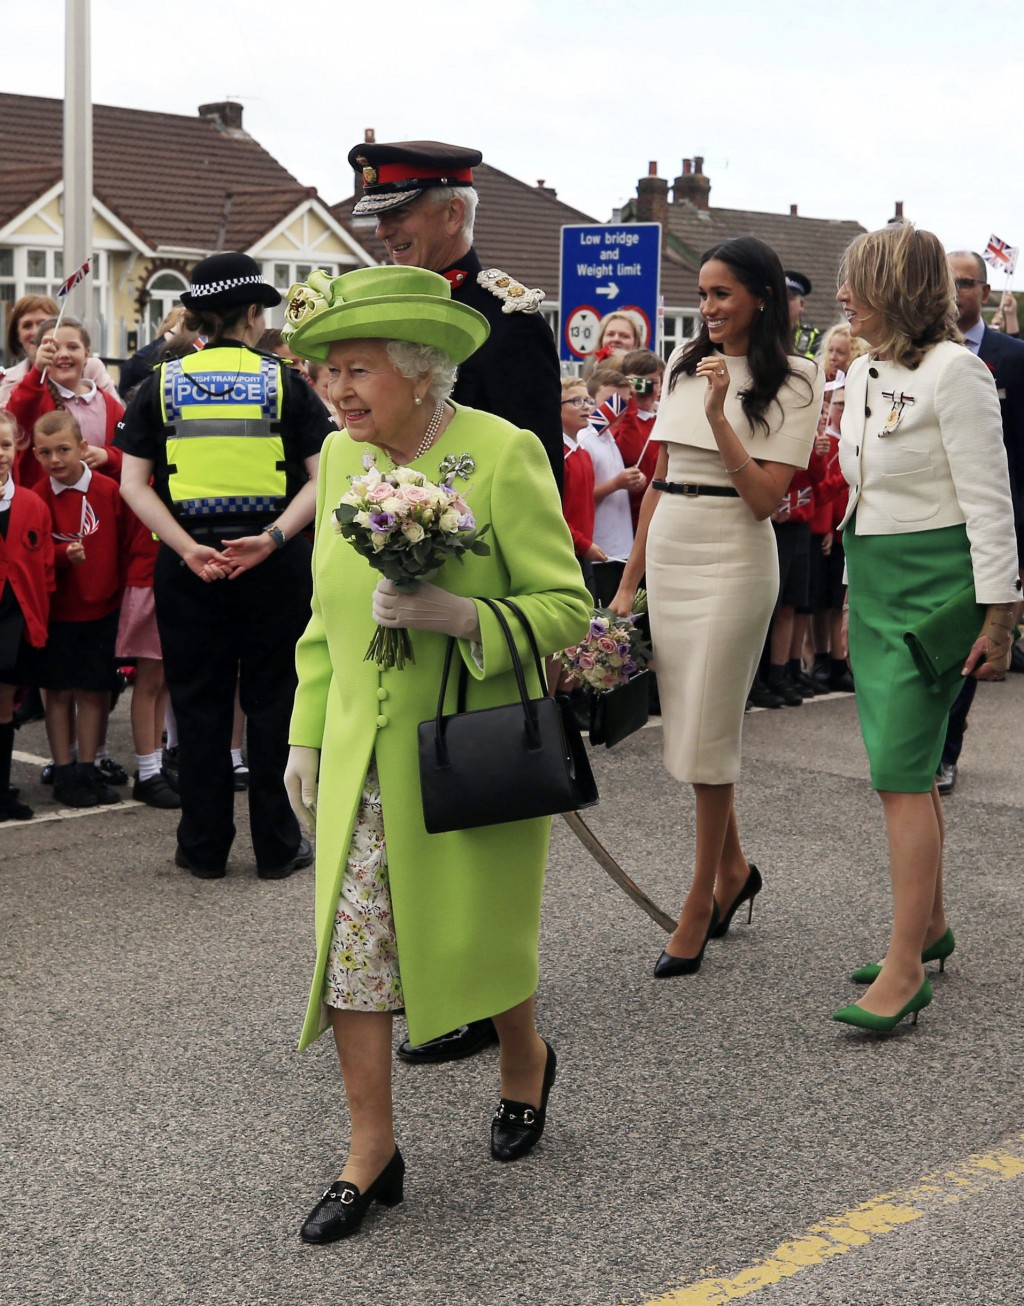 Britain's Queen Elizabeth II and Meghan, the Duchess of Sussex, second right, are welcomed by well-wishers after arriving by Royal Train at Runcorn St